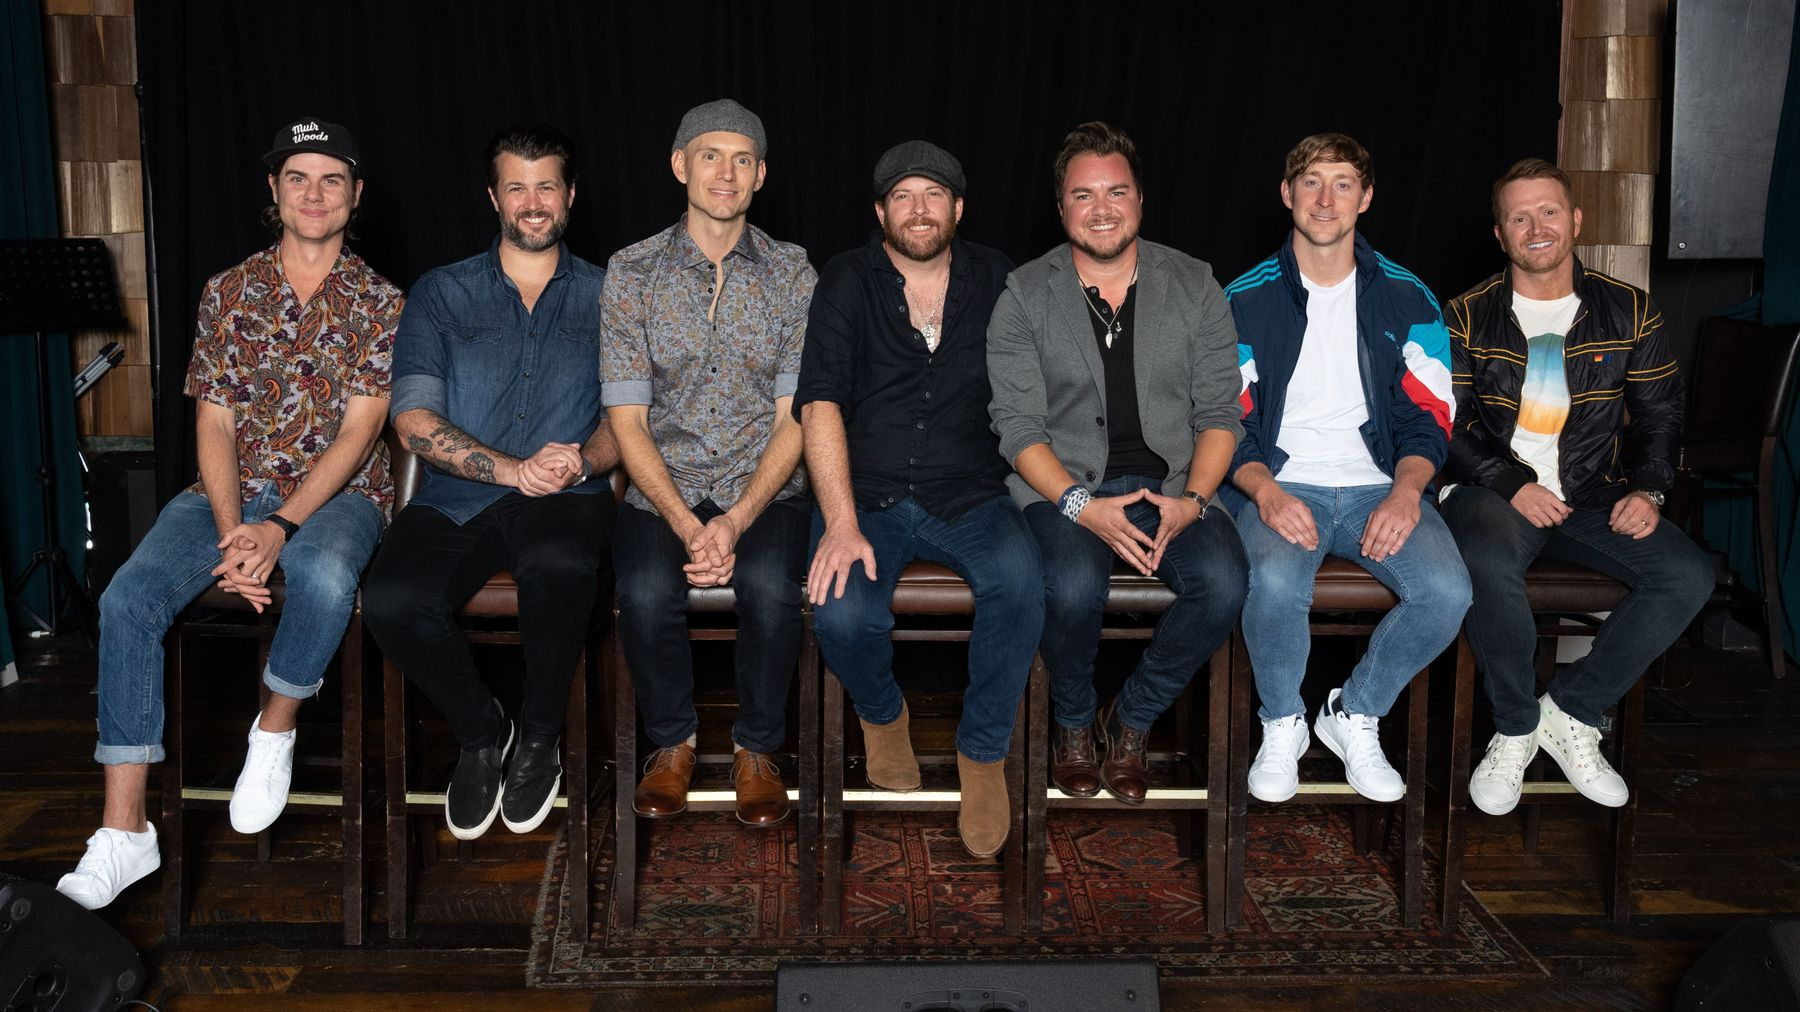 Pictured left to right: Ross Copperman, Eli Young Band (Chris Thompson, Jon Jones, James Young, Mike Eli), Ashley Gorley, and Shane McAnally